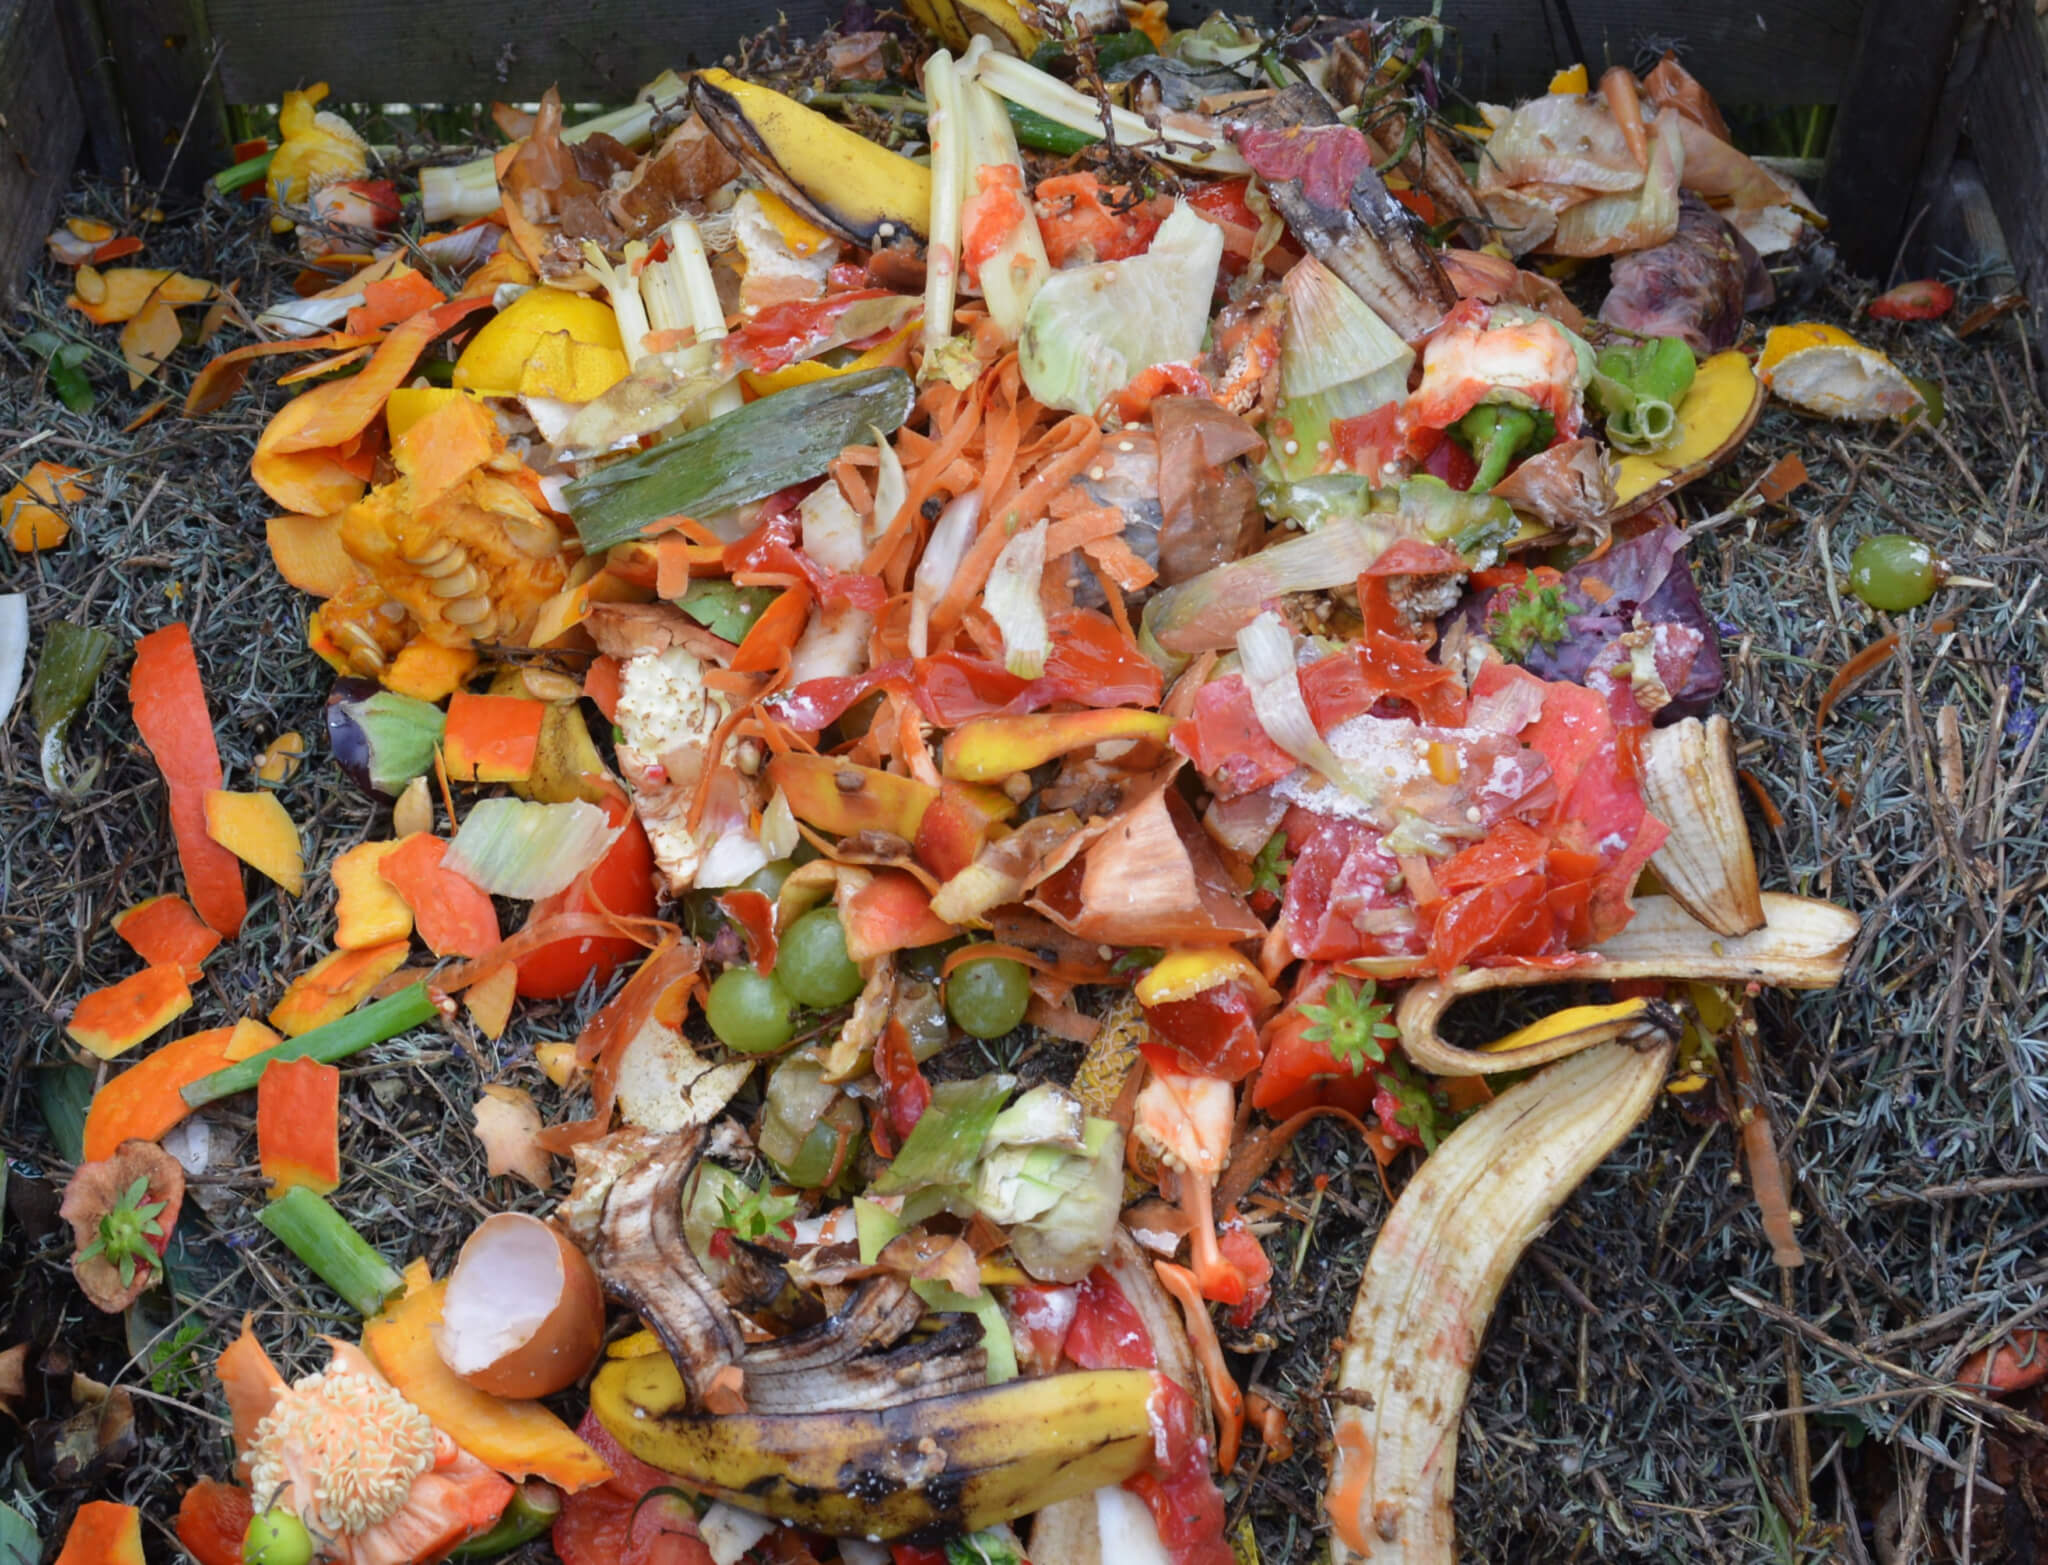 composting organic waste for a waste management plan (WMP) report